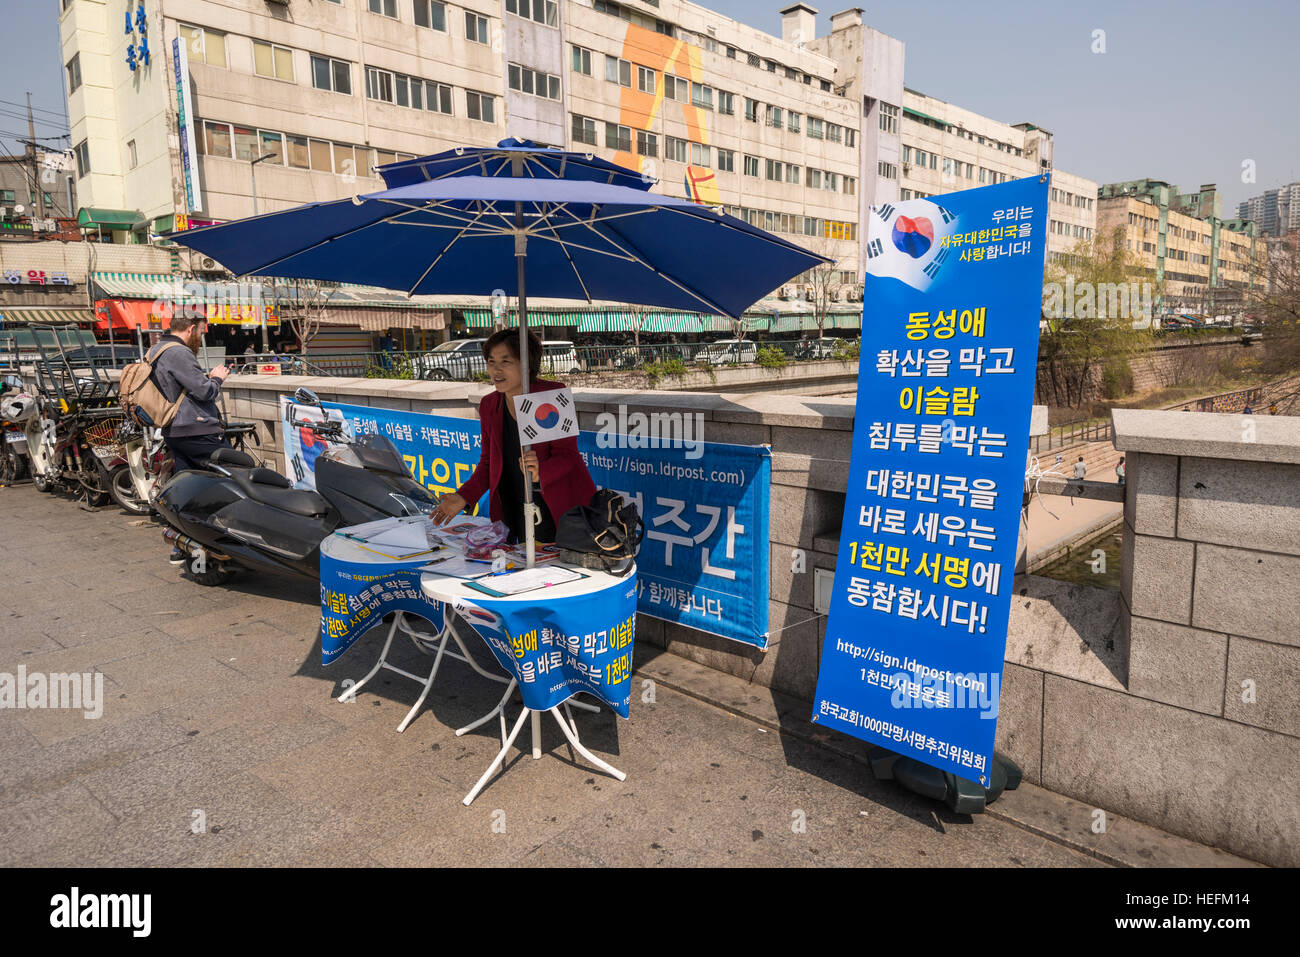 Street campainger asking to sign a petition against spread of Islam and Gay people in the street of Seoul, Korea - Stock Image